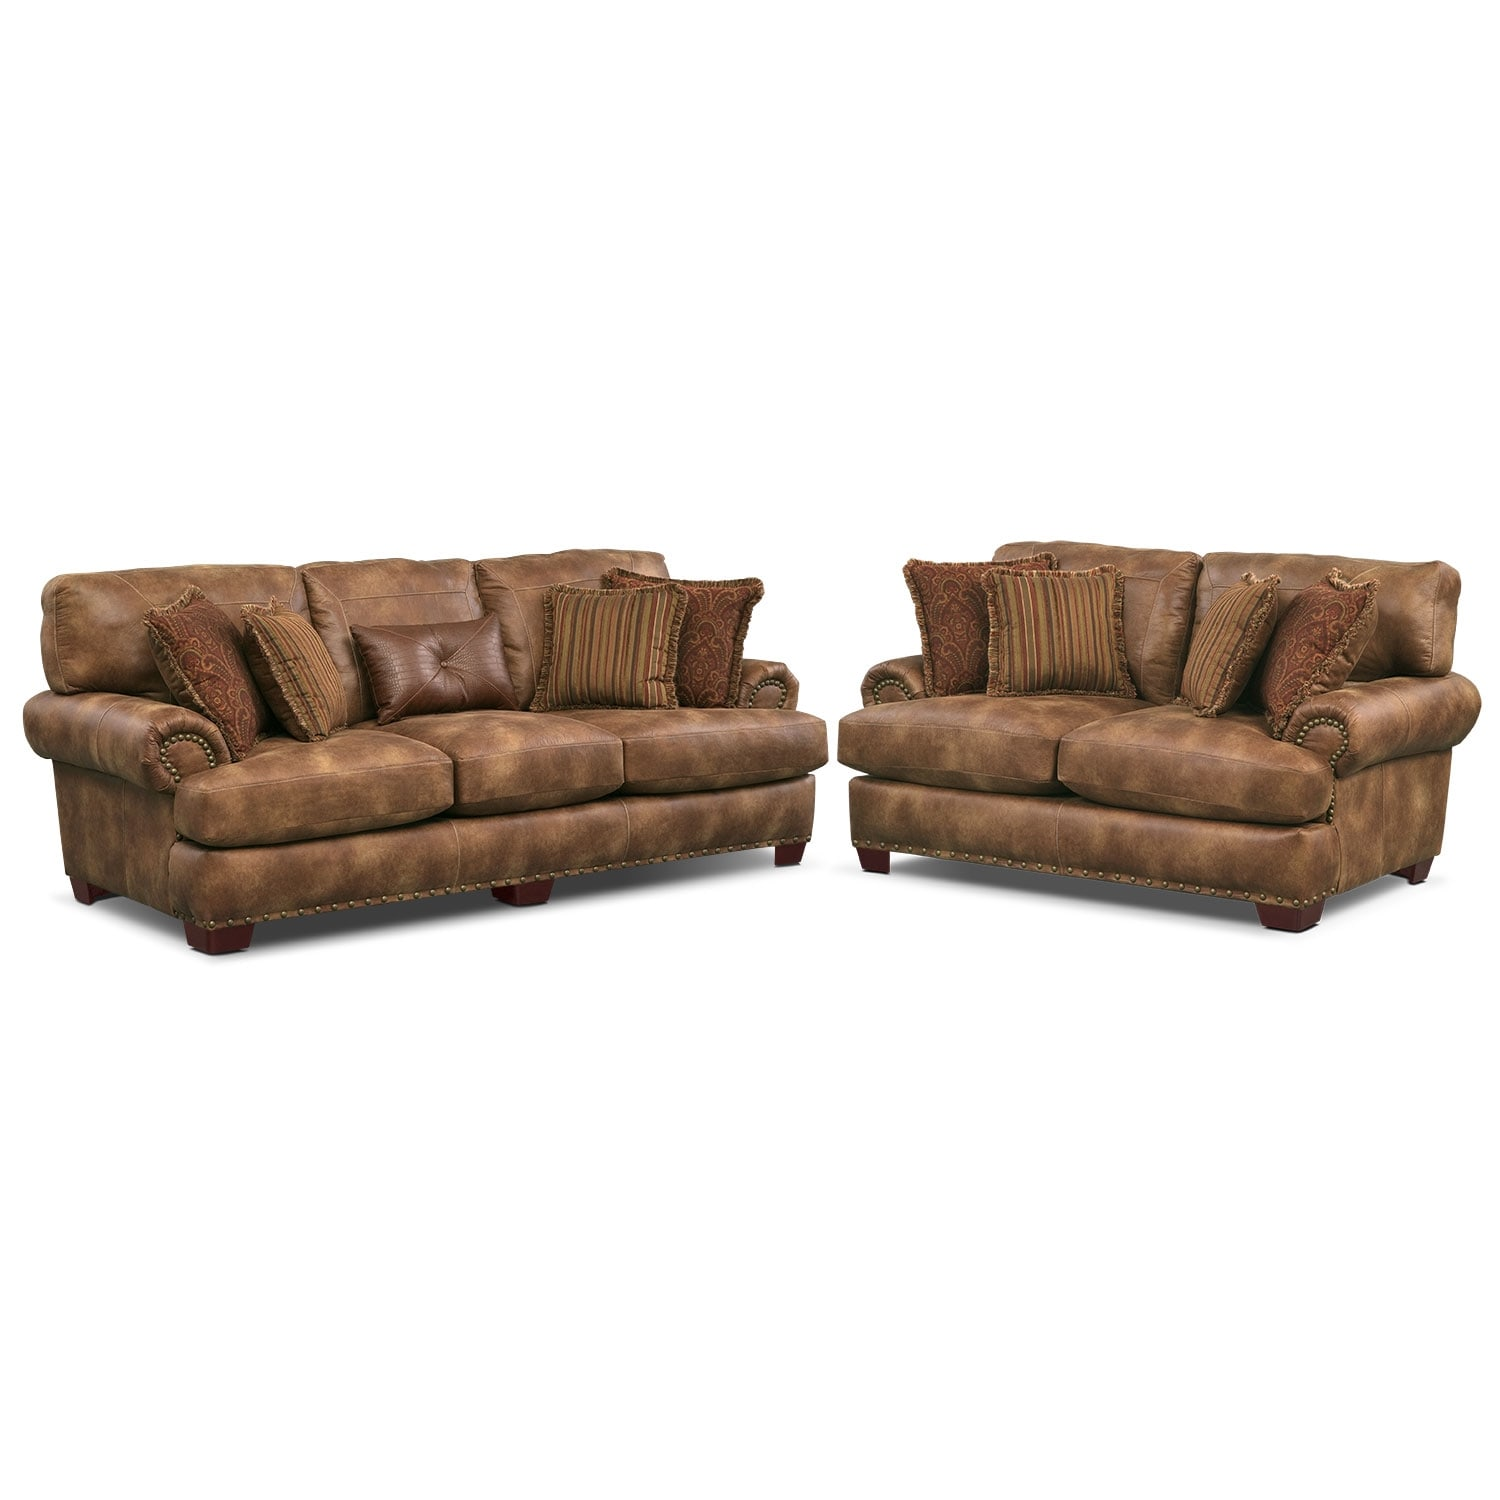 Burlington Sofa and Loveseat Set - Cognac